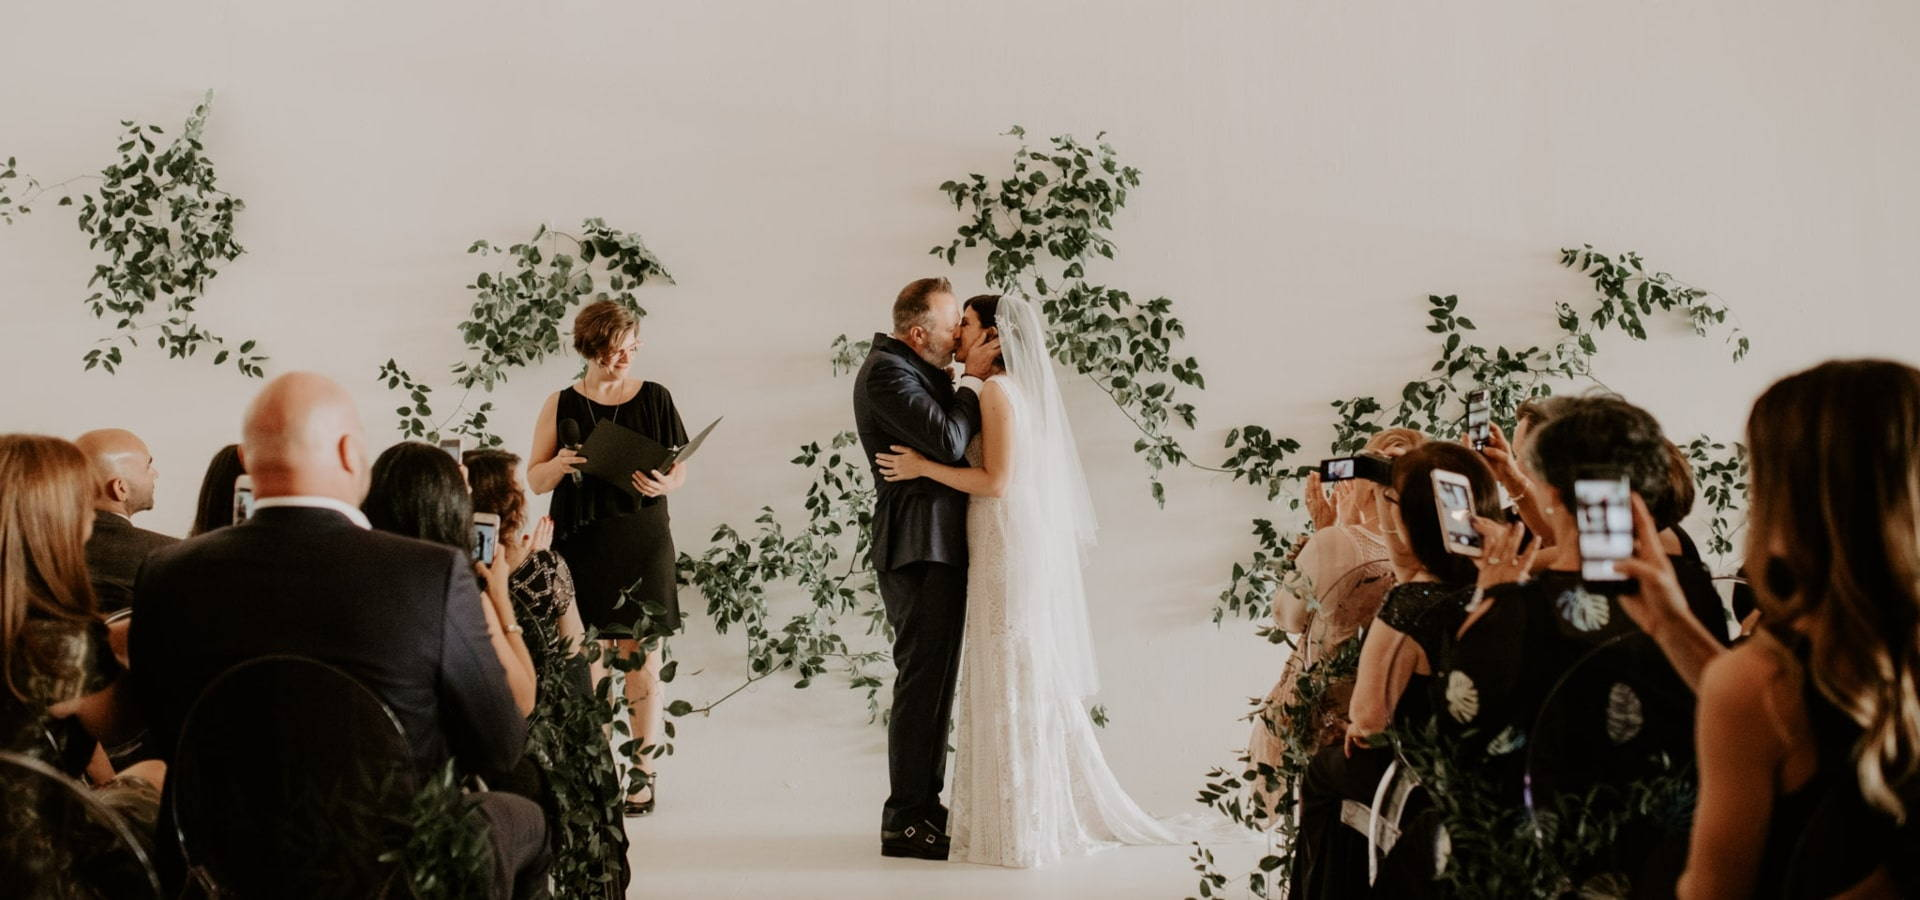 Hero image for What Will Your Wedding Day Look Like? Here's Your Typical Ceremony Timeline